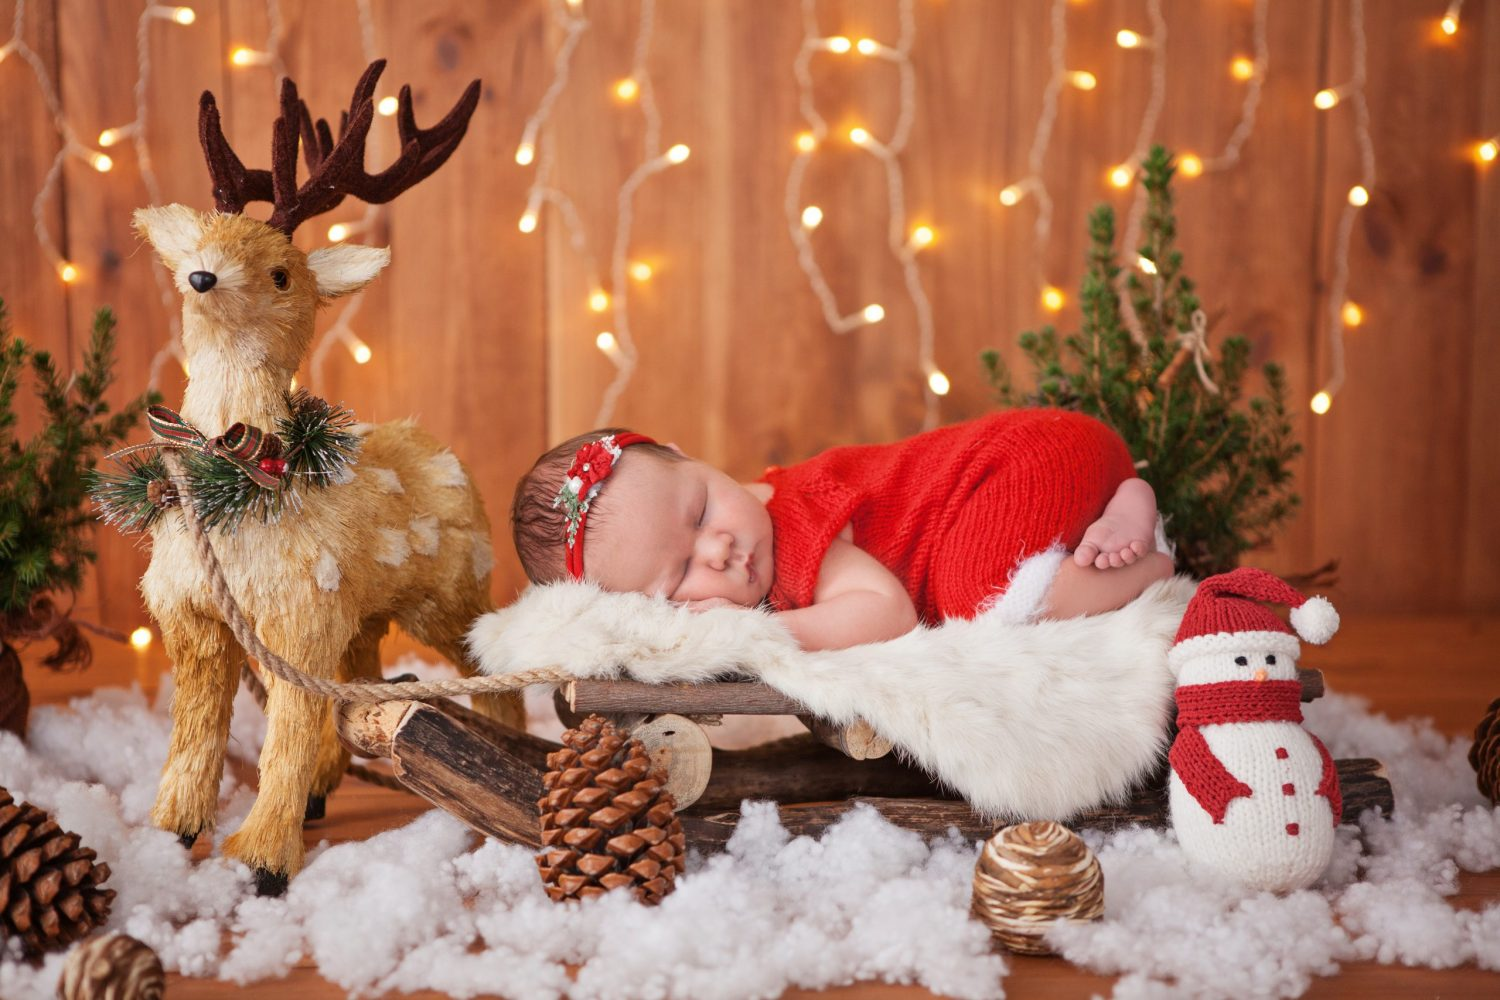 baby names meaning gift from god or miracle